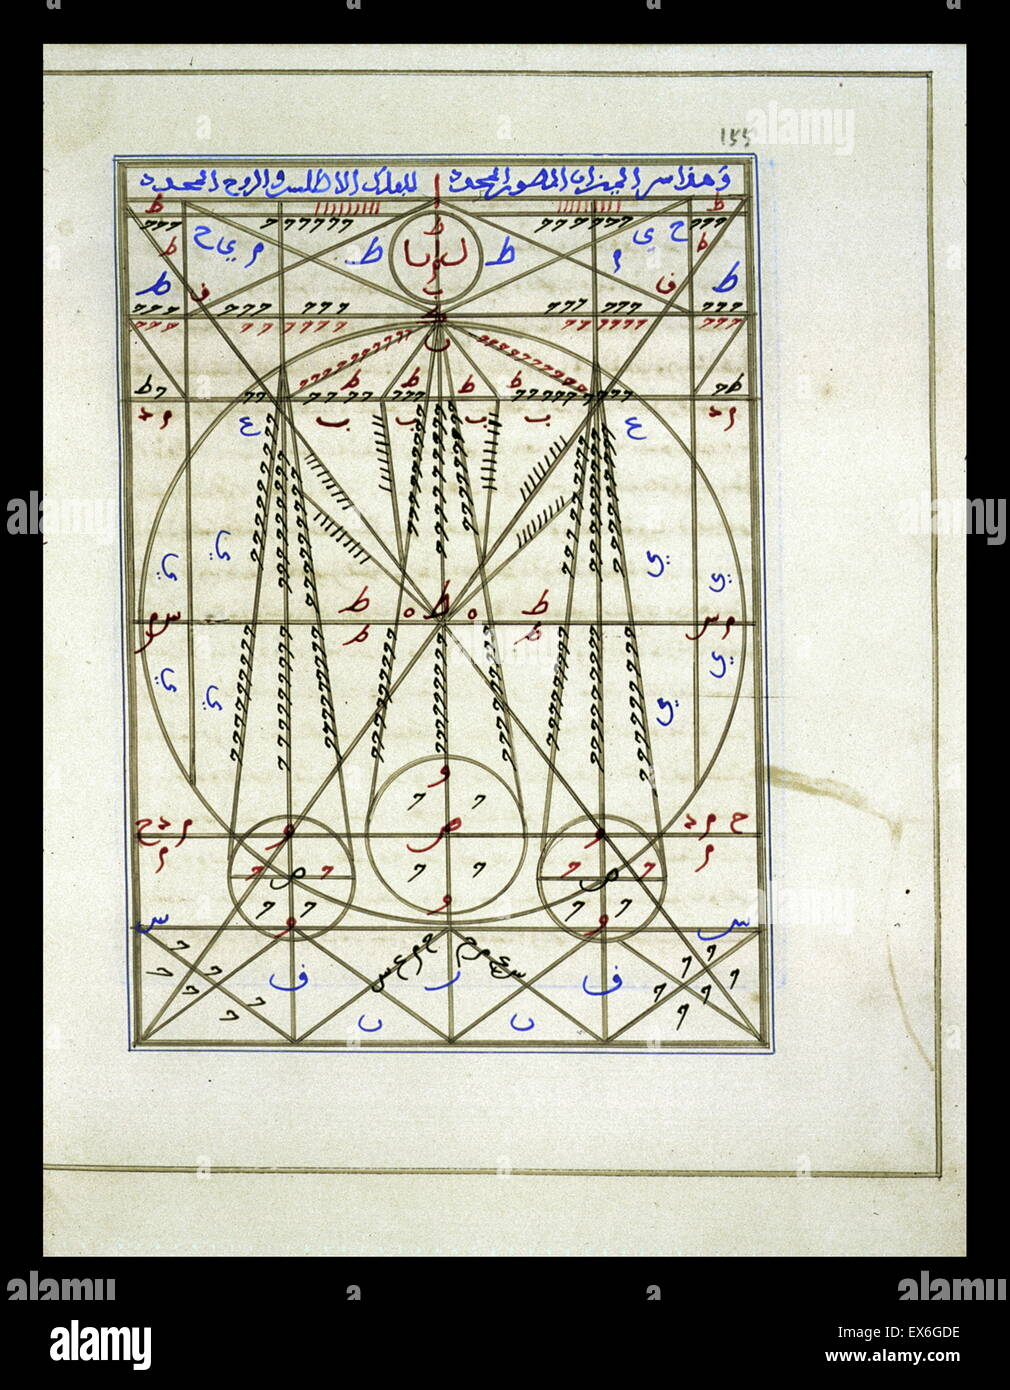 A schematic diagram in the form of a pan-balance from a copy of the ...